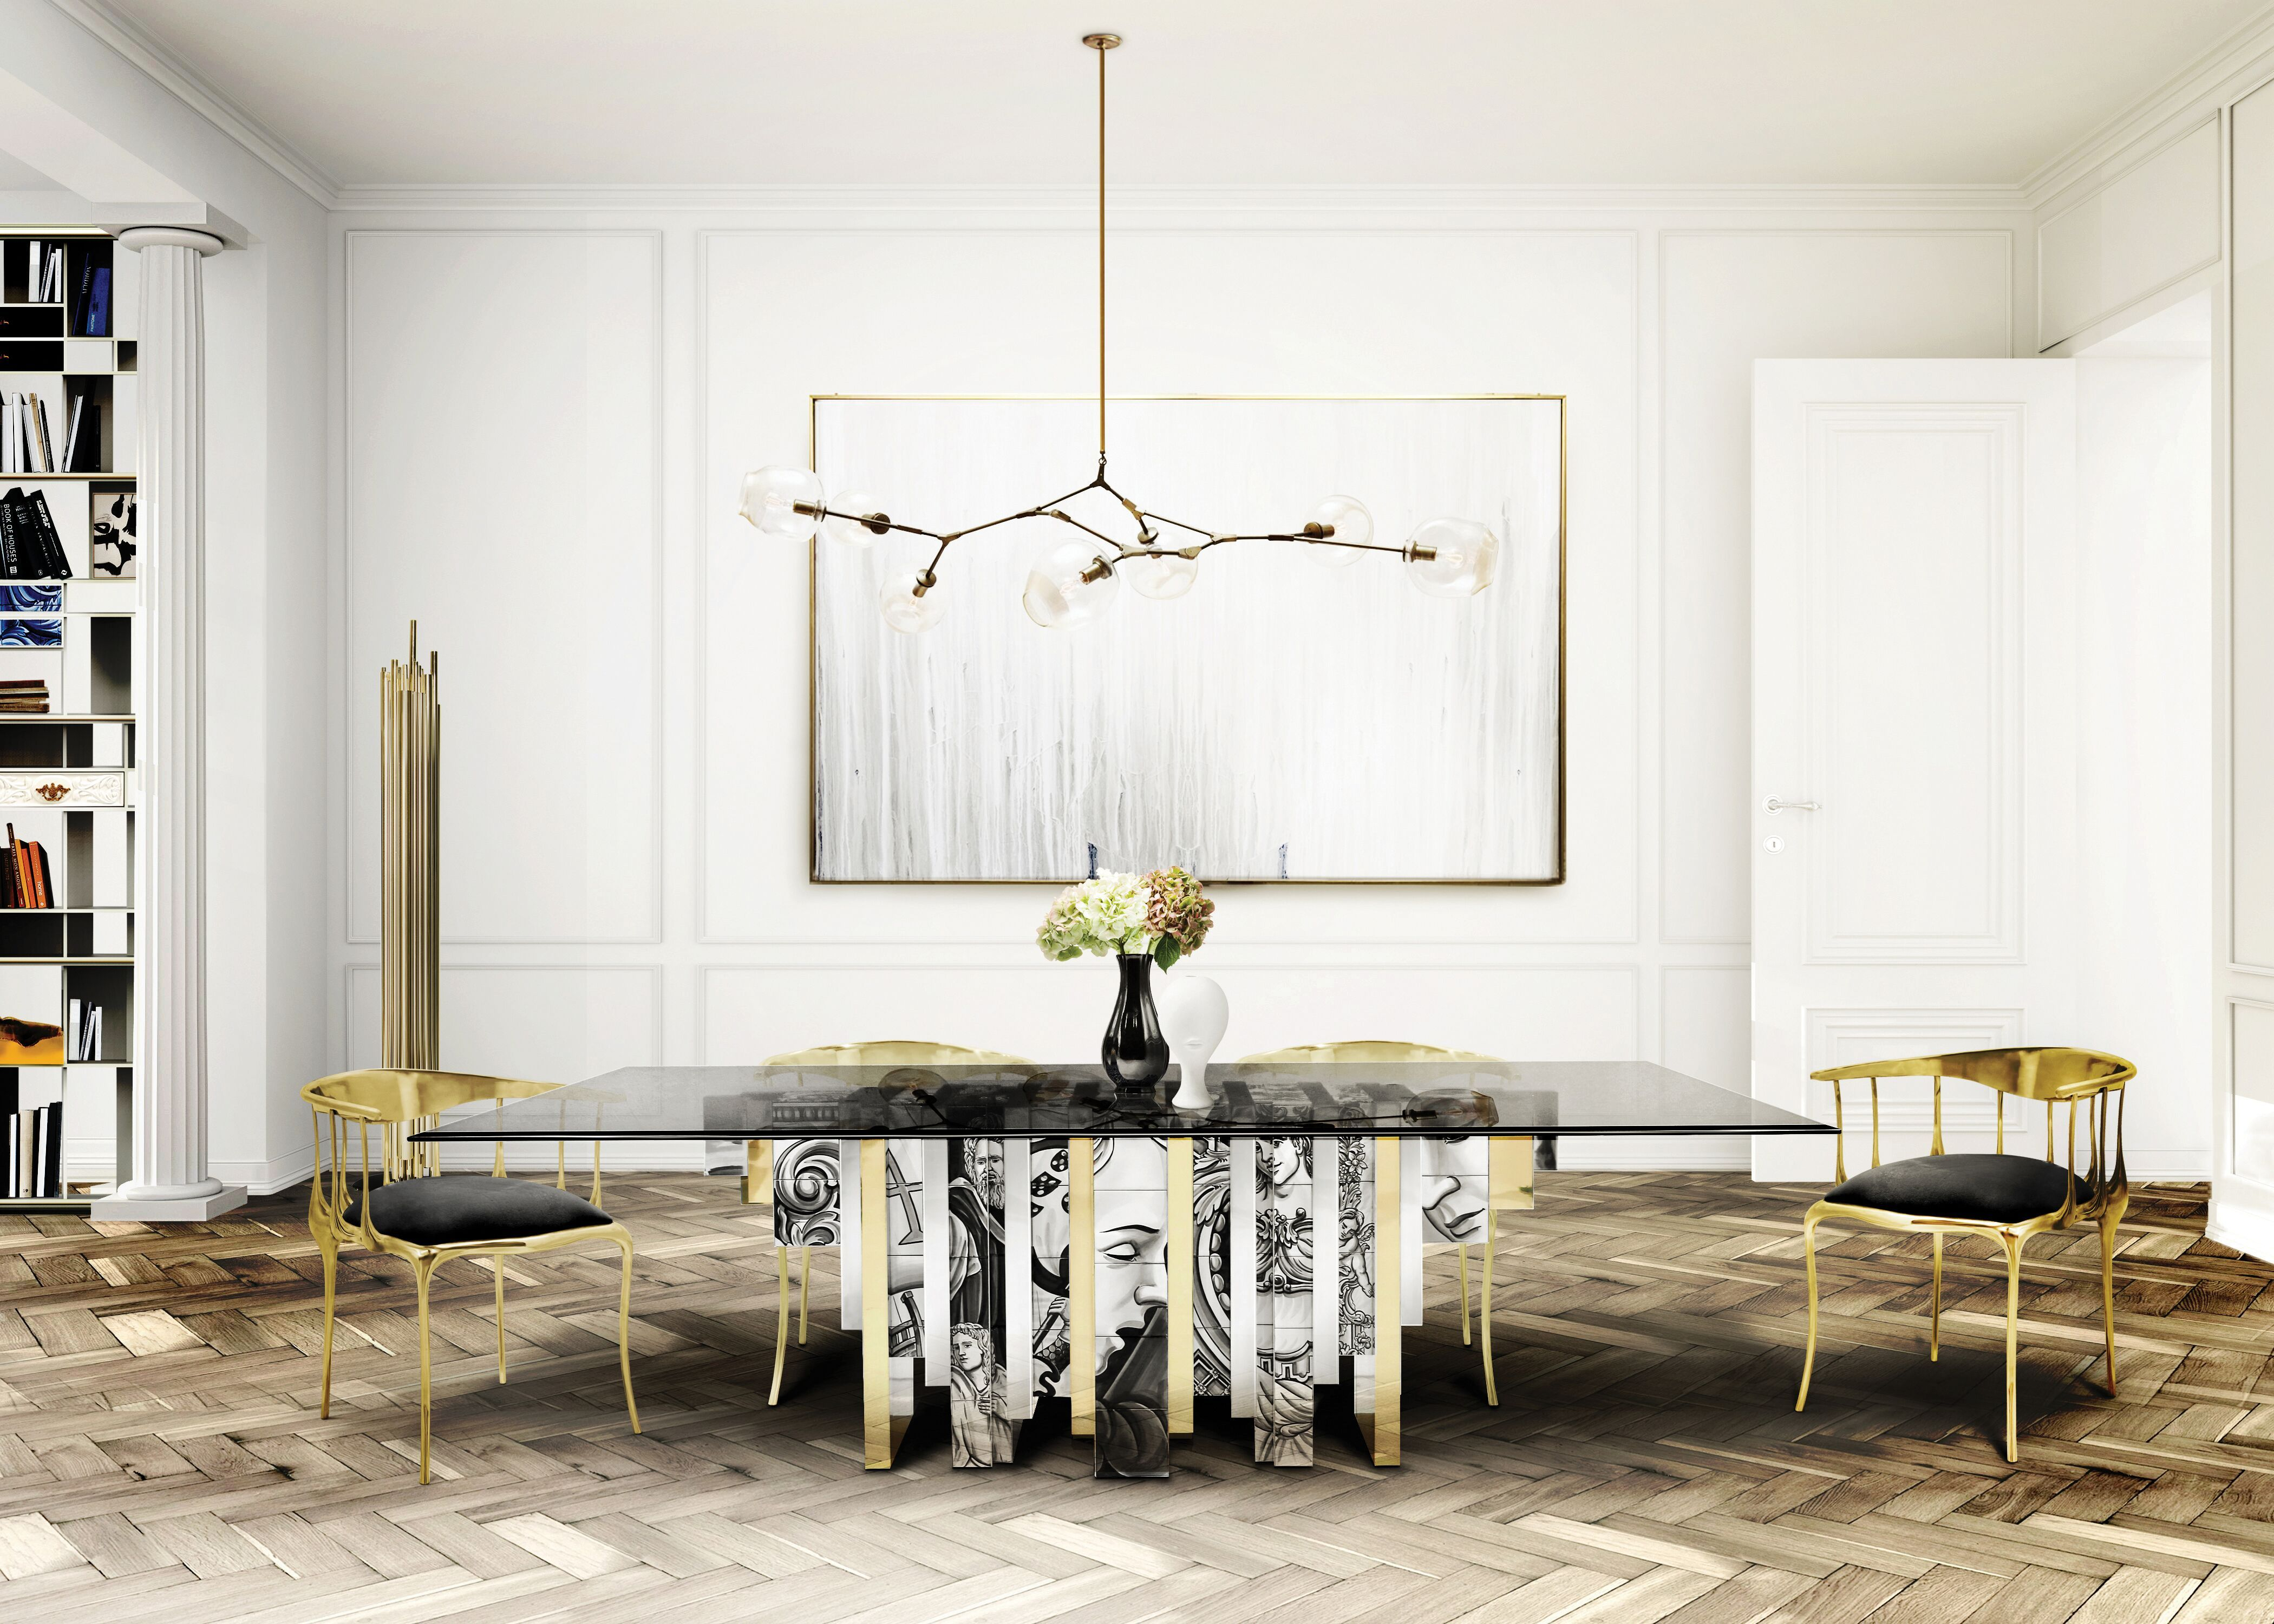 Heritage Dining Table Exclusive Furniture  Dining Room Design Impressive Heritage Dining Room Furniture Design Inspiration